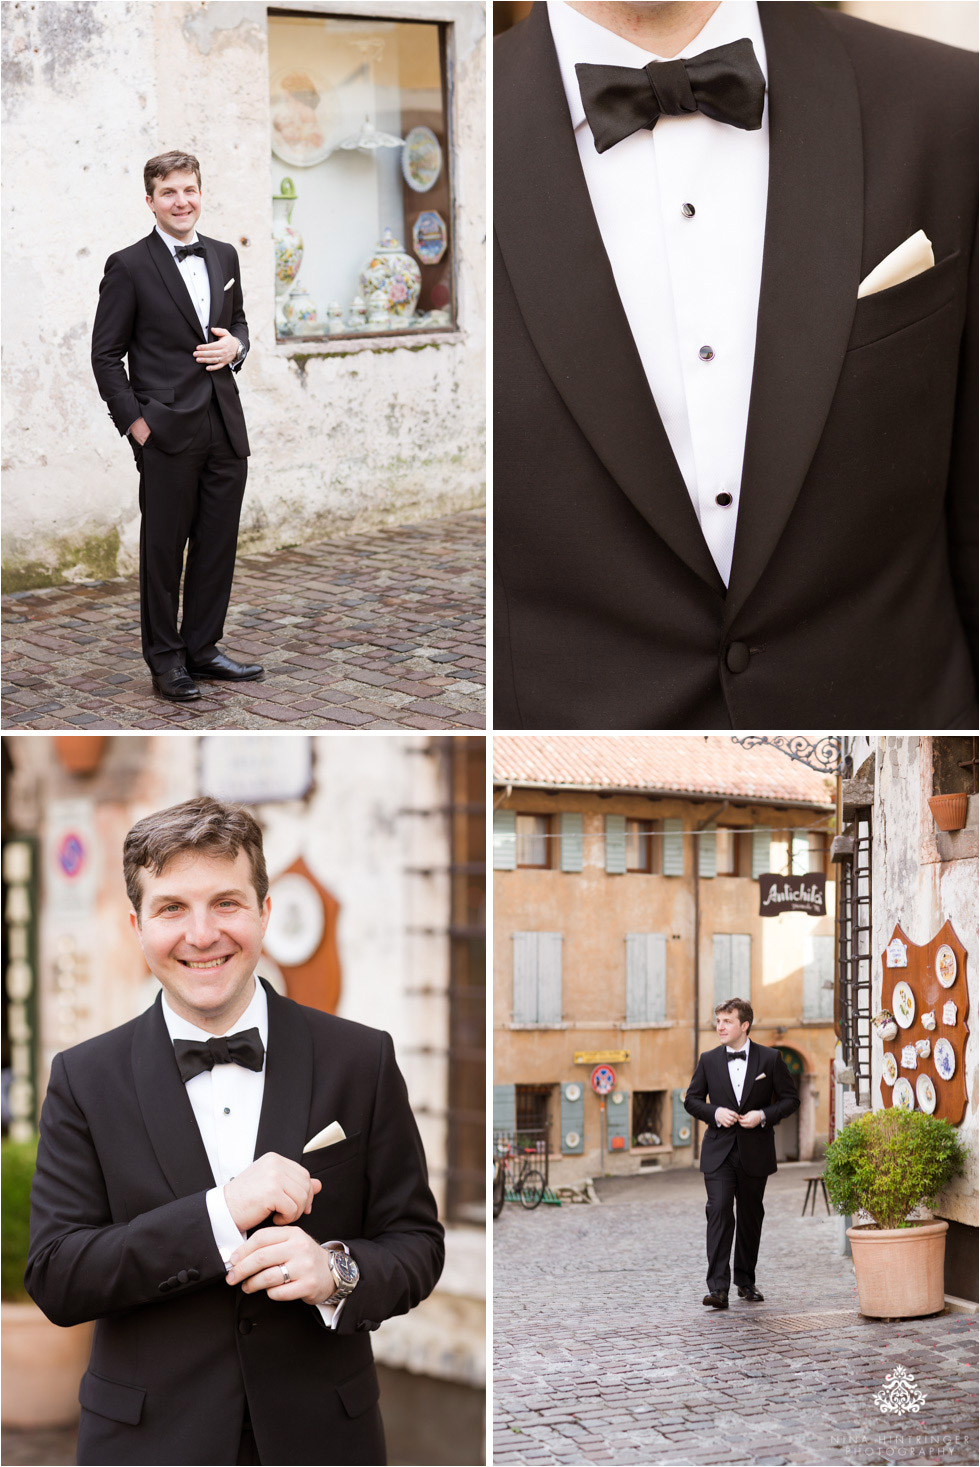 Groom portraits in the city center of Bassano del Grappa, Italy - Blog of Nina Hintringer Photography - Wedding Photography, Wedding Reportage and Destination Weddings